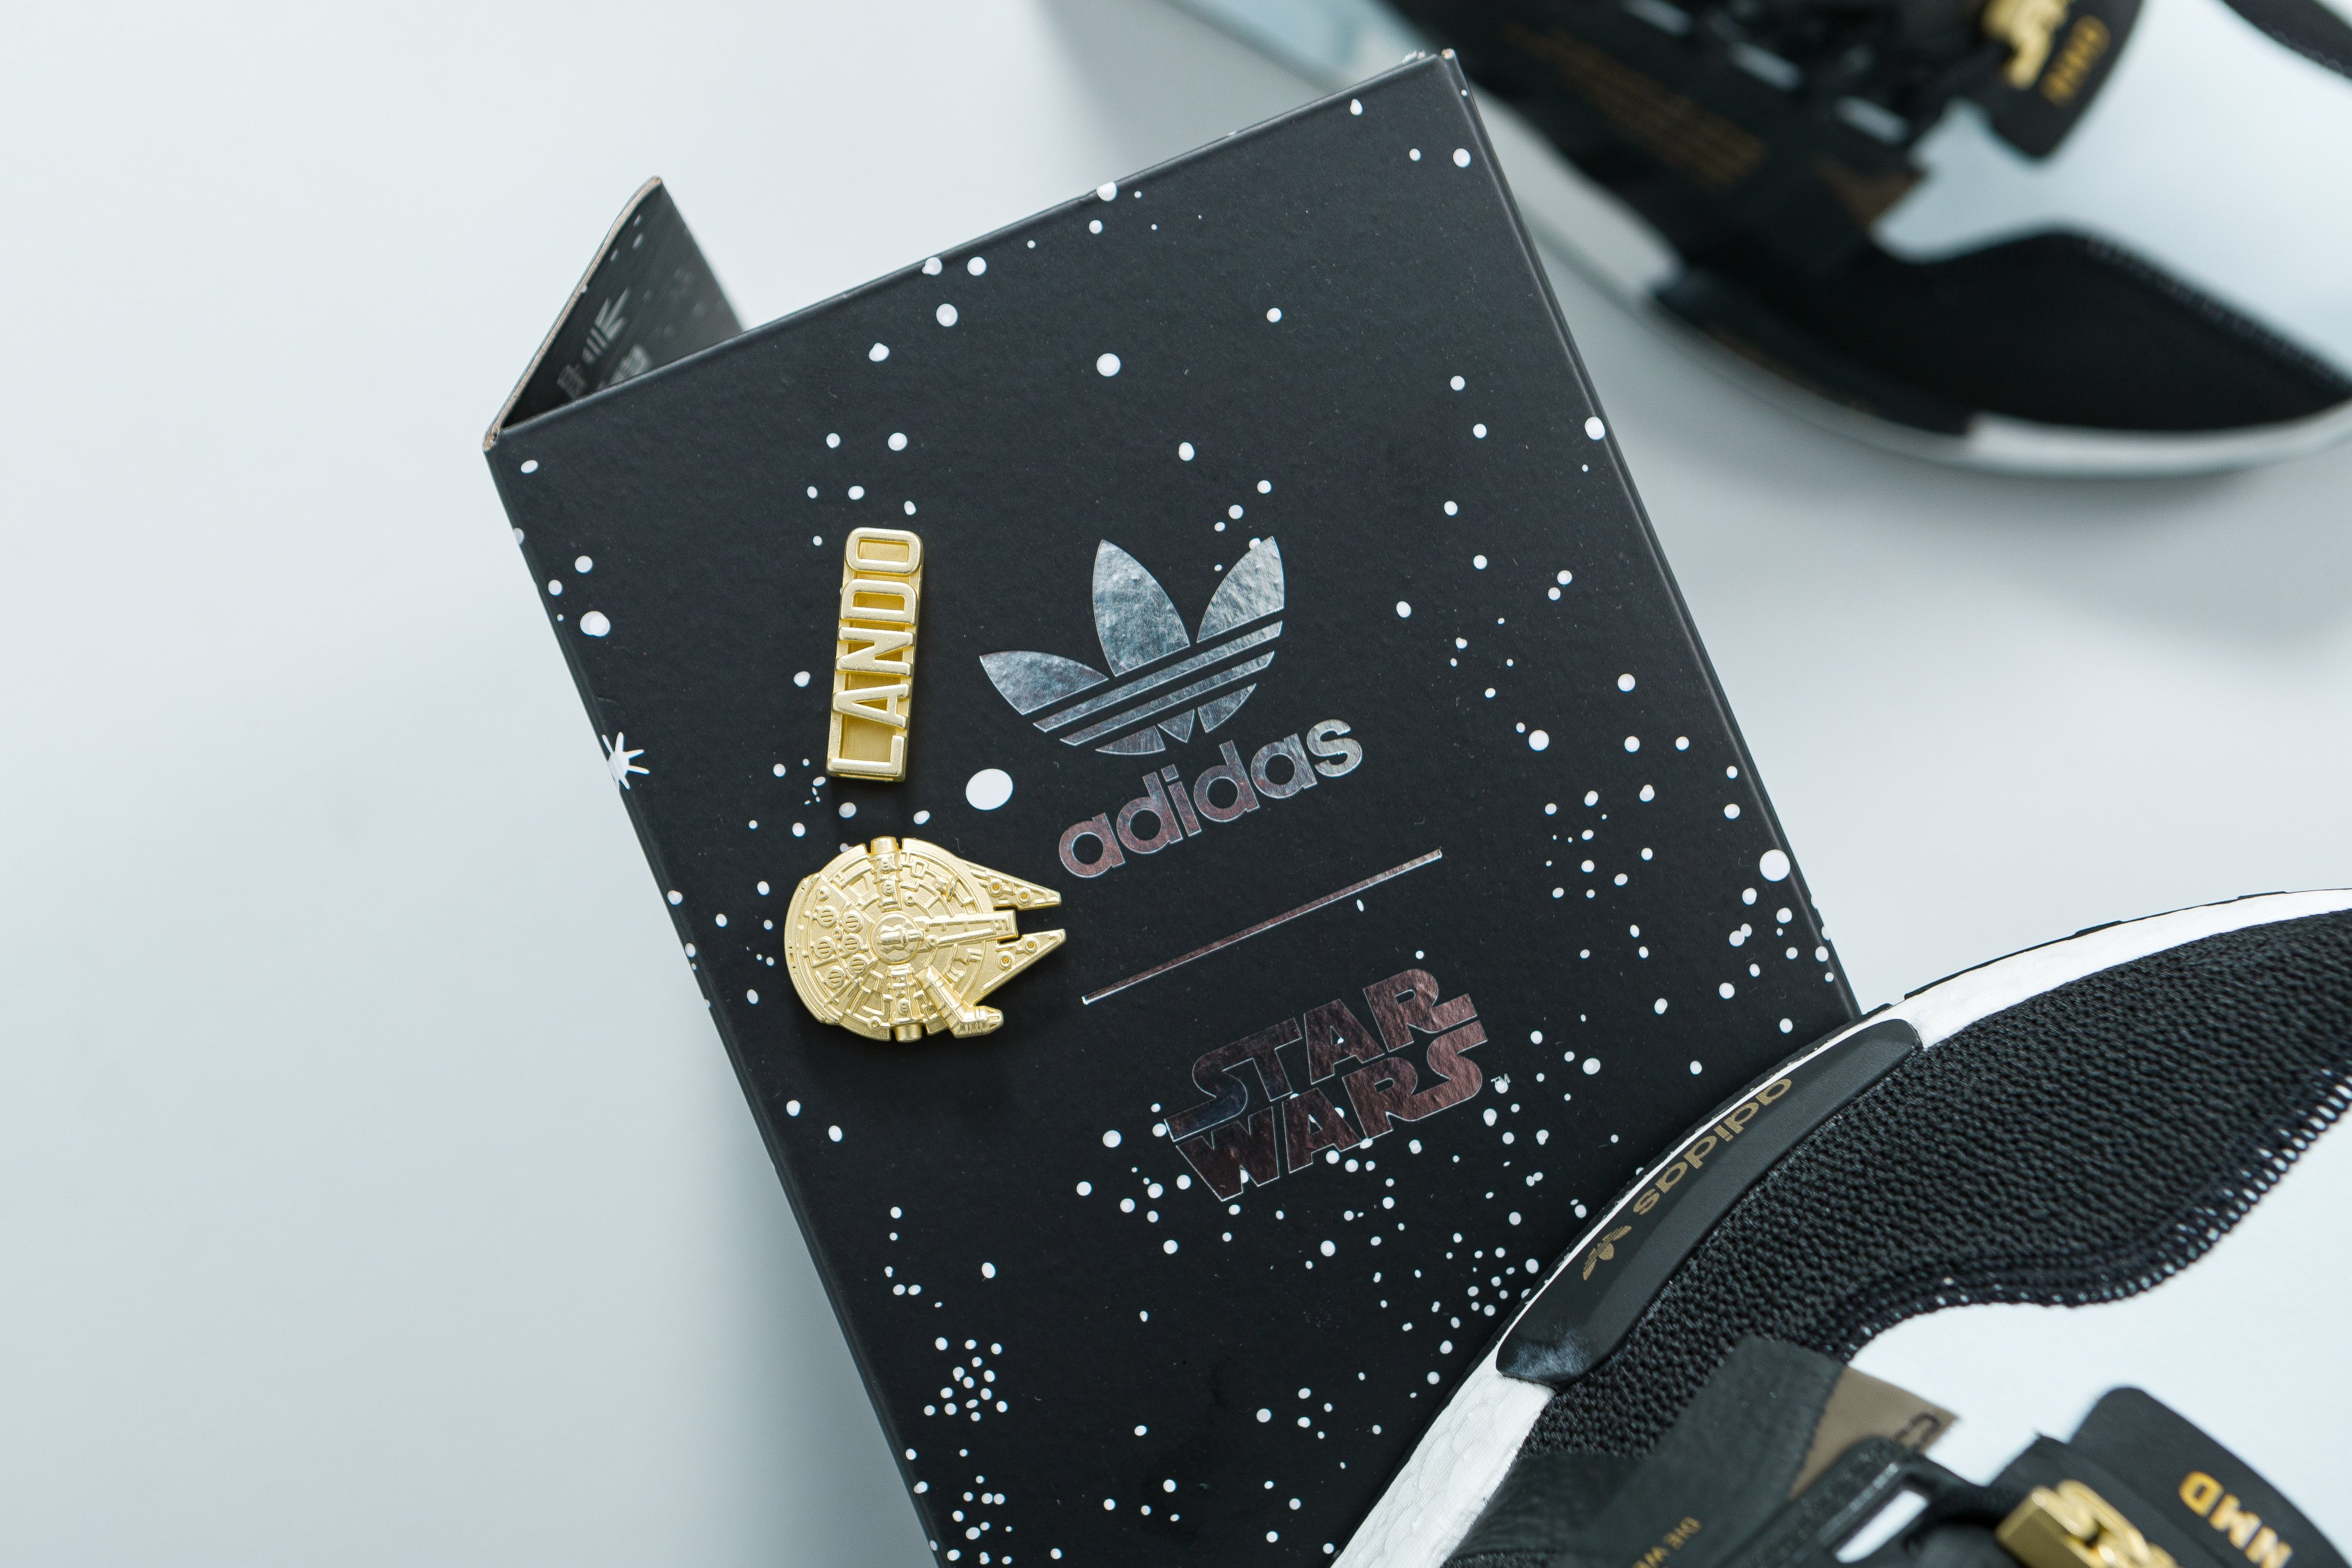 adidas Originals X Star Wars Princess Leia, Yoda UltraBOOST DNA and Lando Calrissian NMD R1 V2